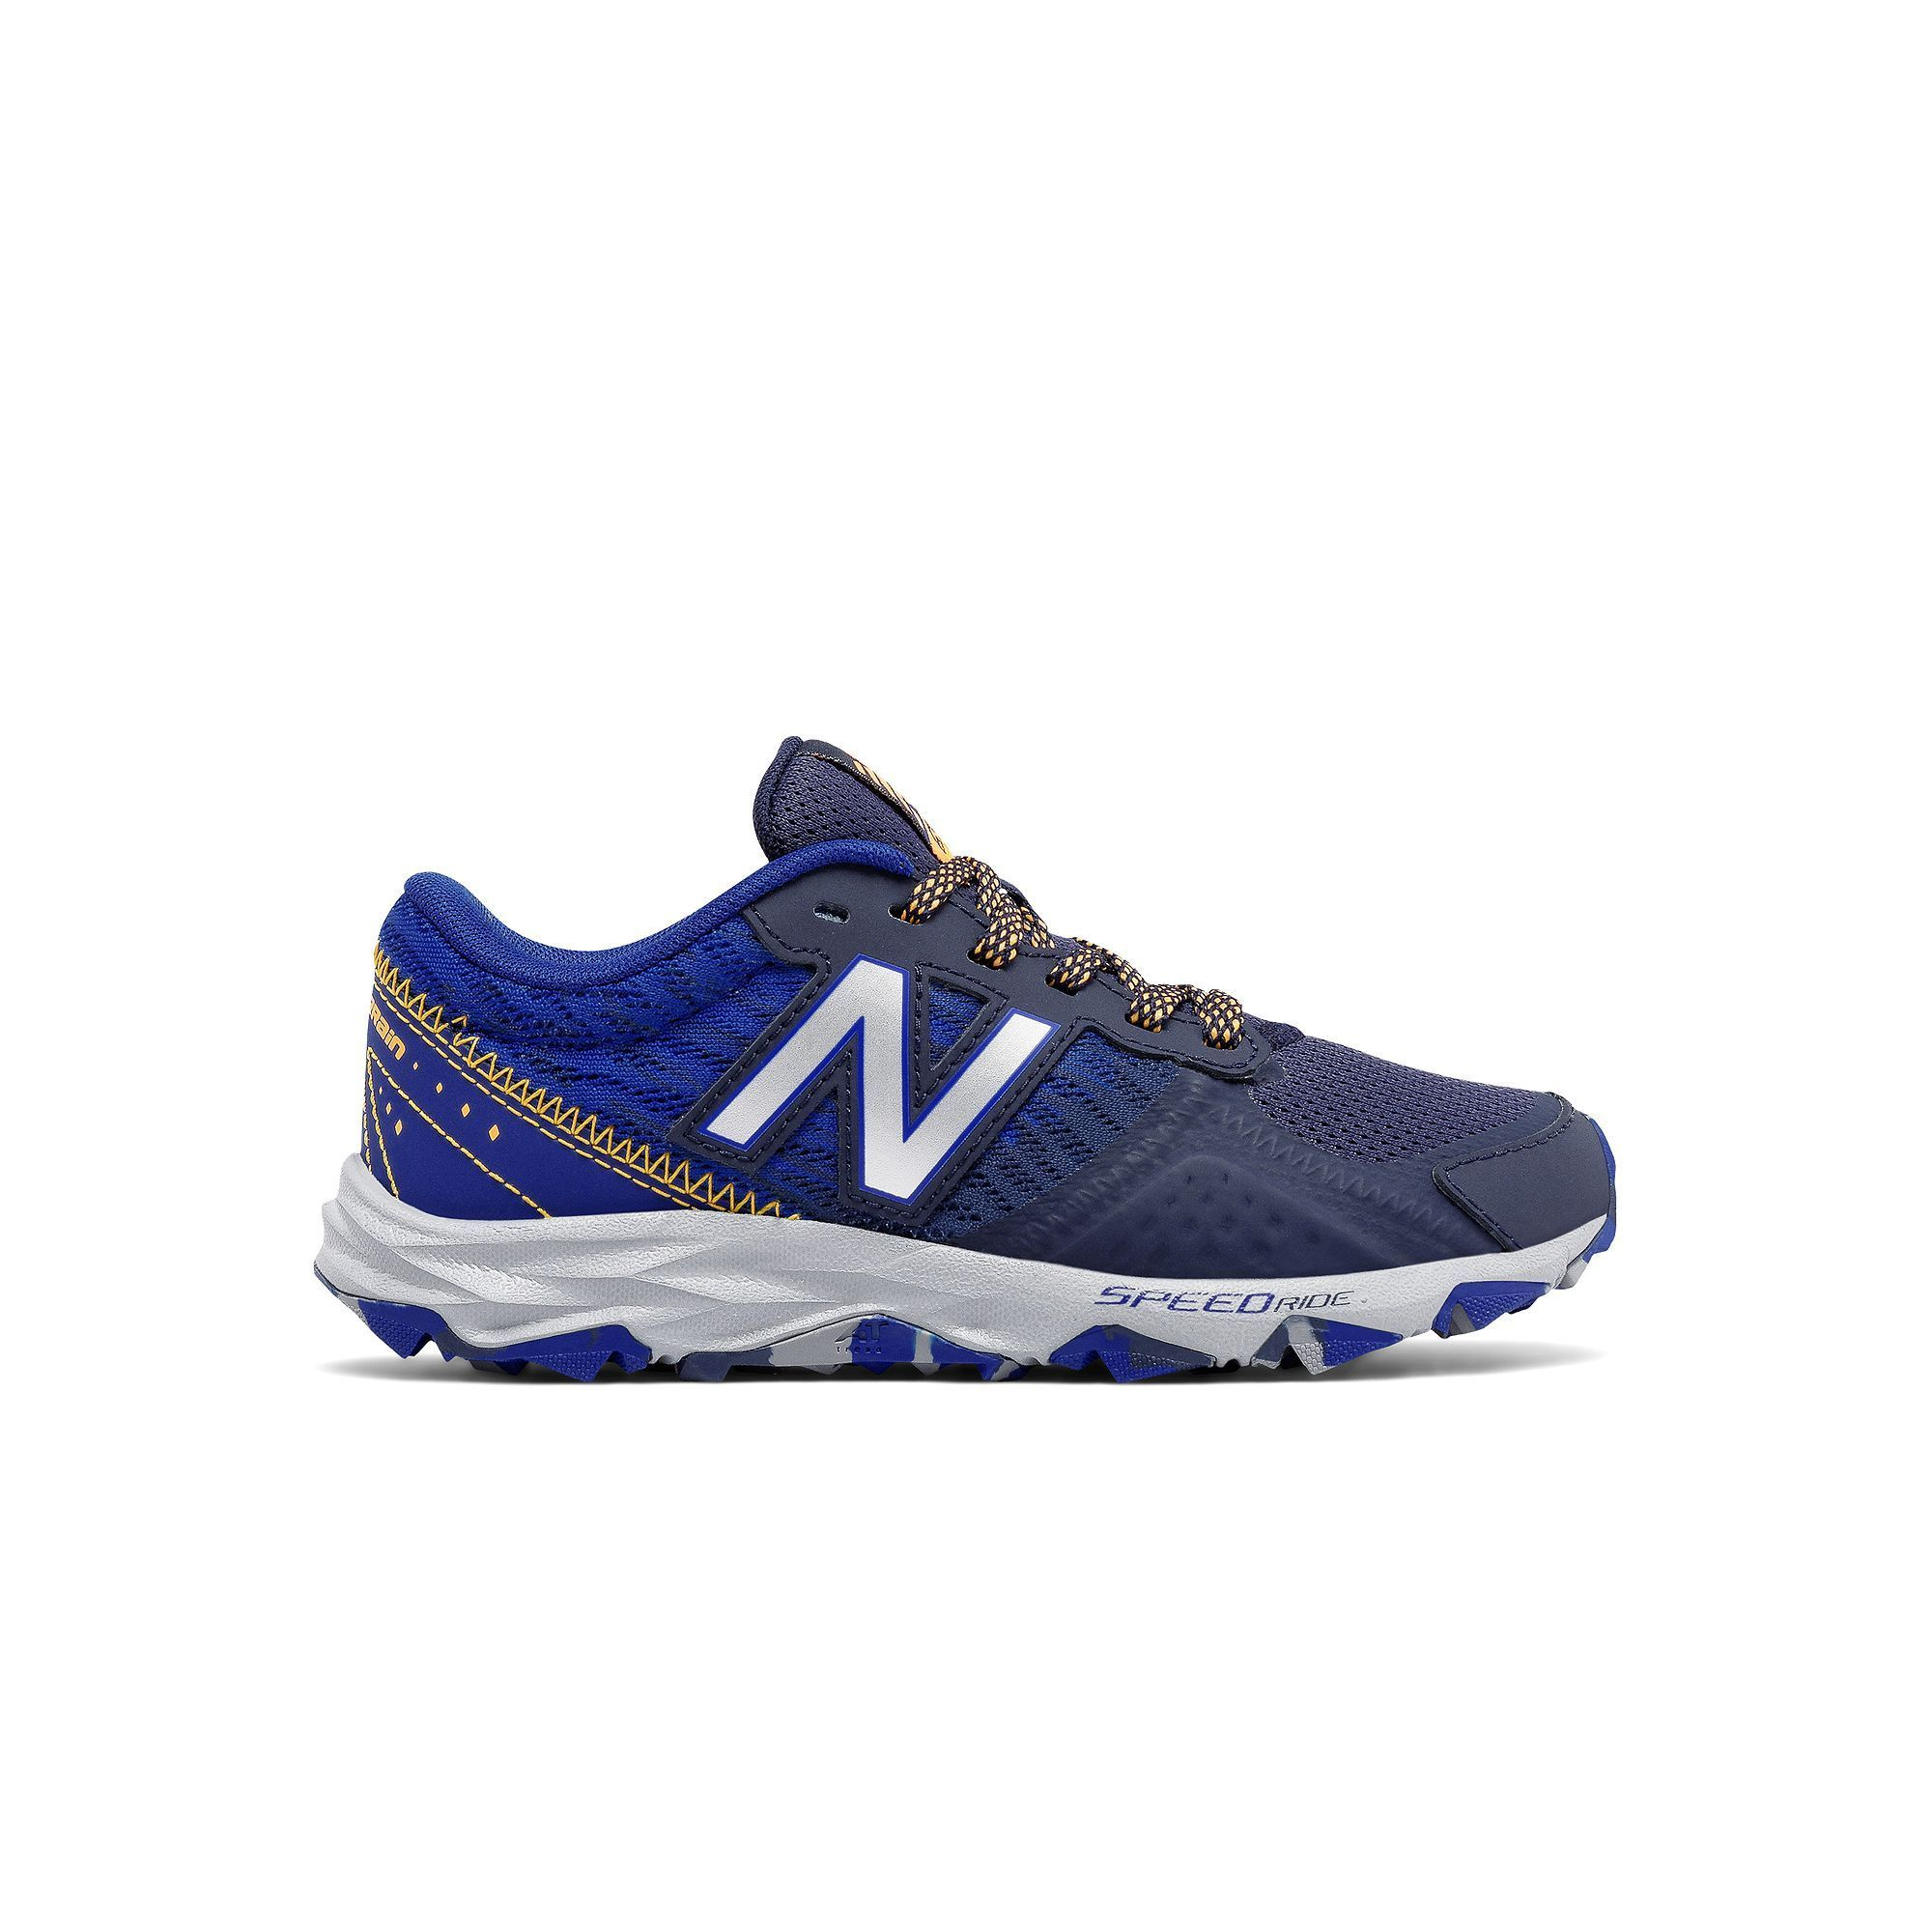 New Balance 690 v2 Boys' Trail Running Shoes, Boy's, Size